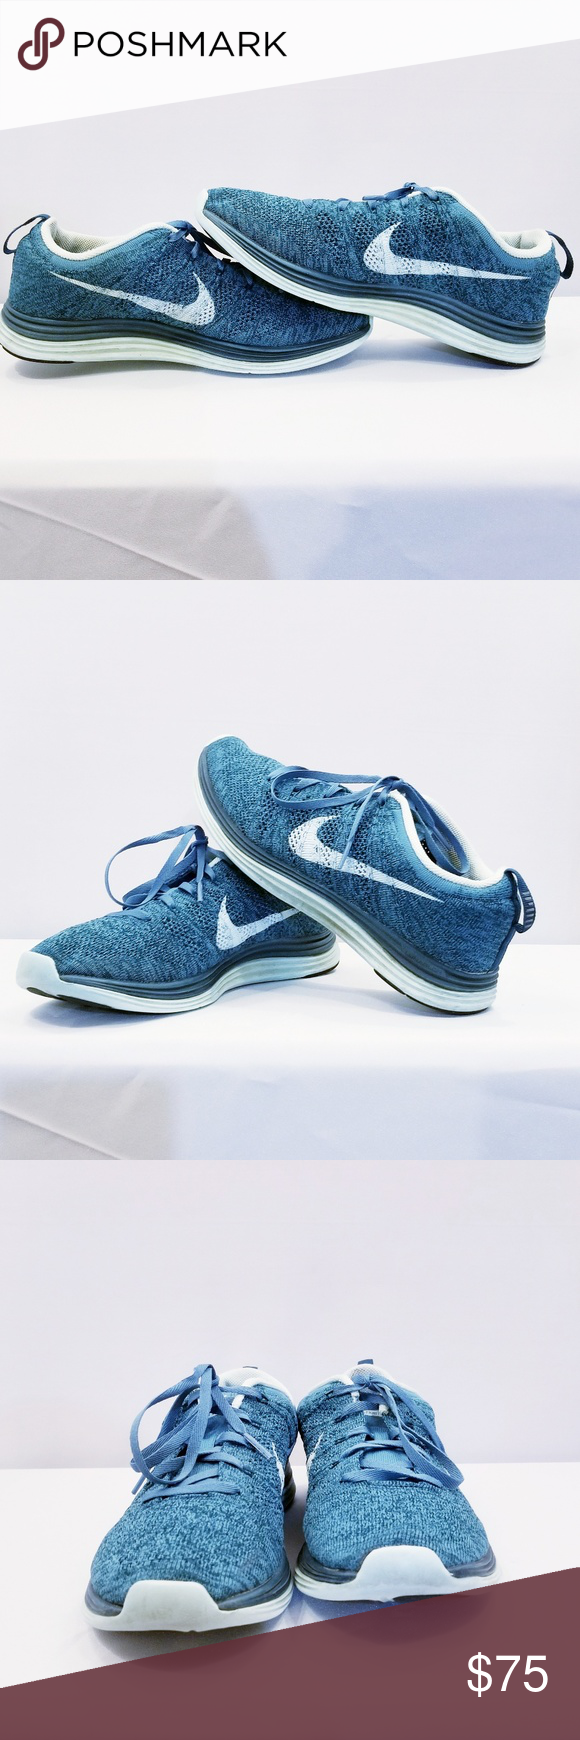 8f62dddde NIKE Flyknit Lunar 1 Women's Running Shoes The best pair of running shoes  ever created in my opinion. Ultra light weight and breathable Flyknit upper  for ...